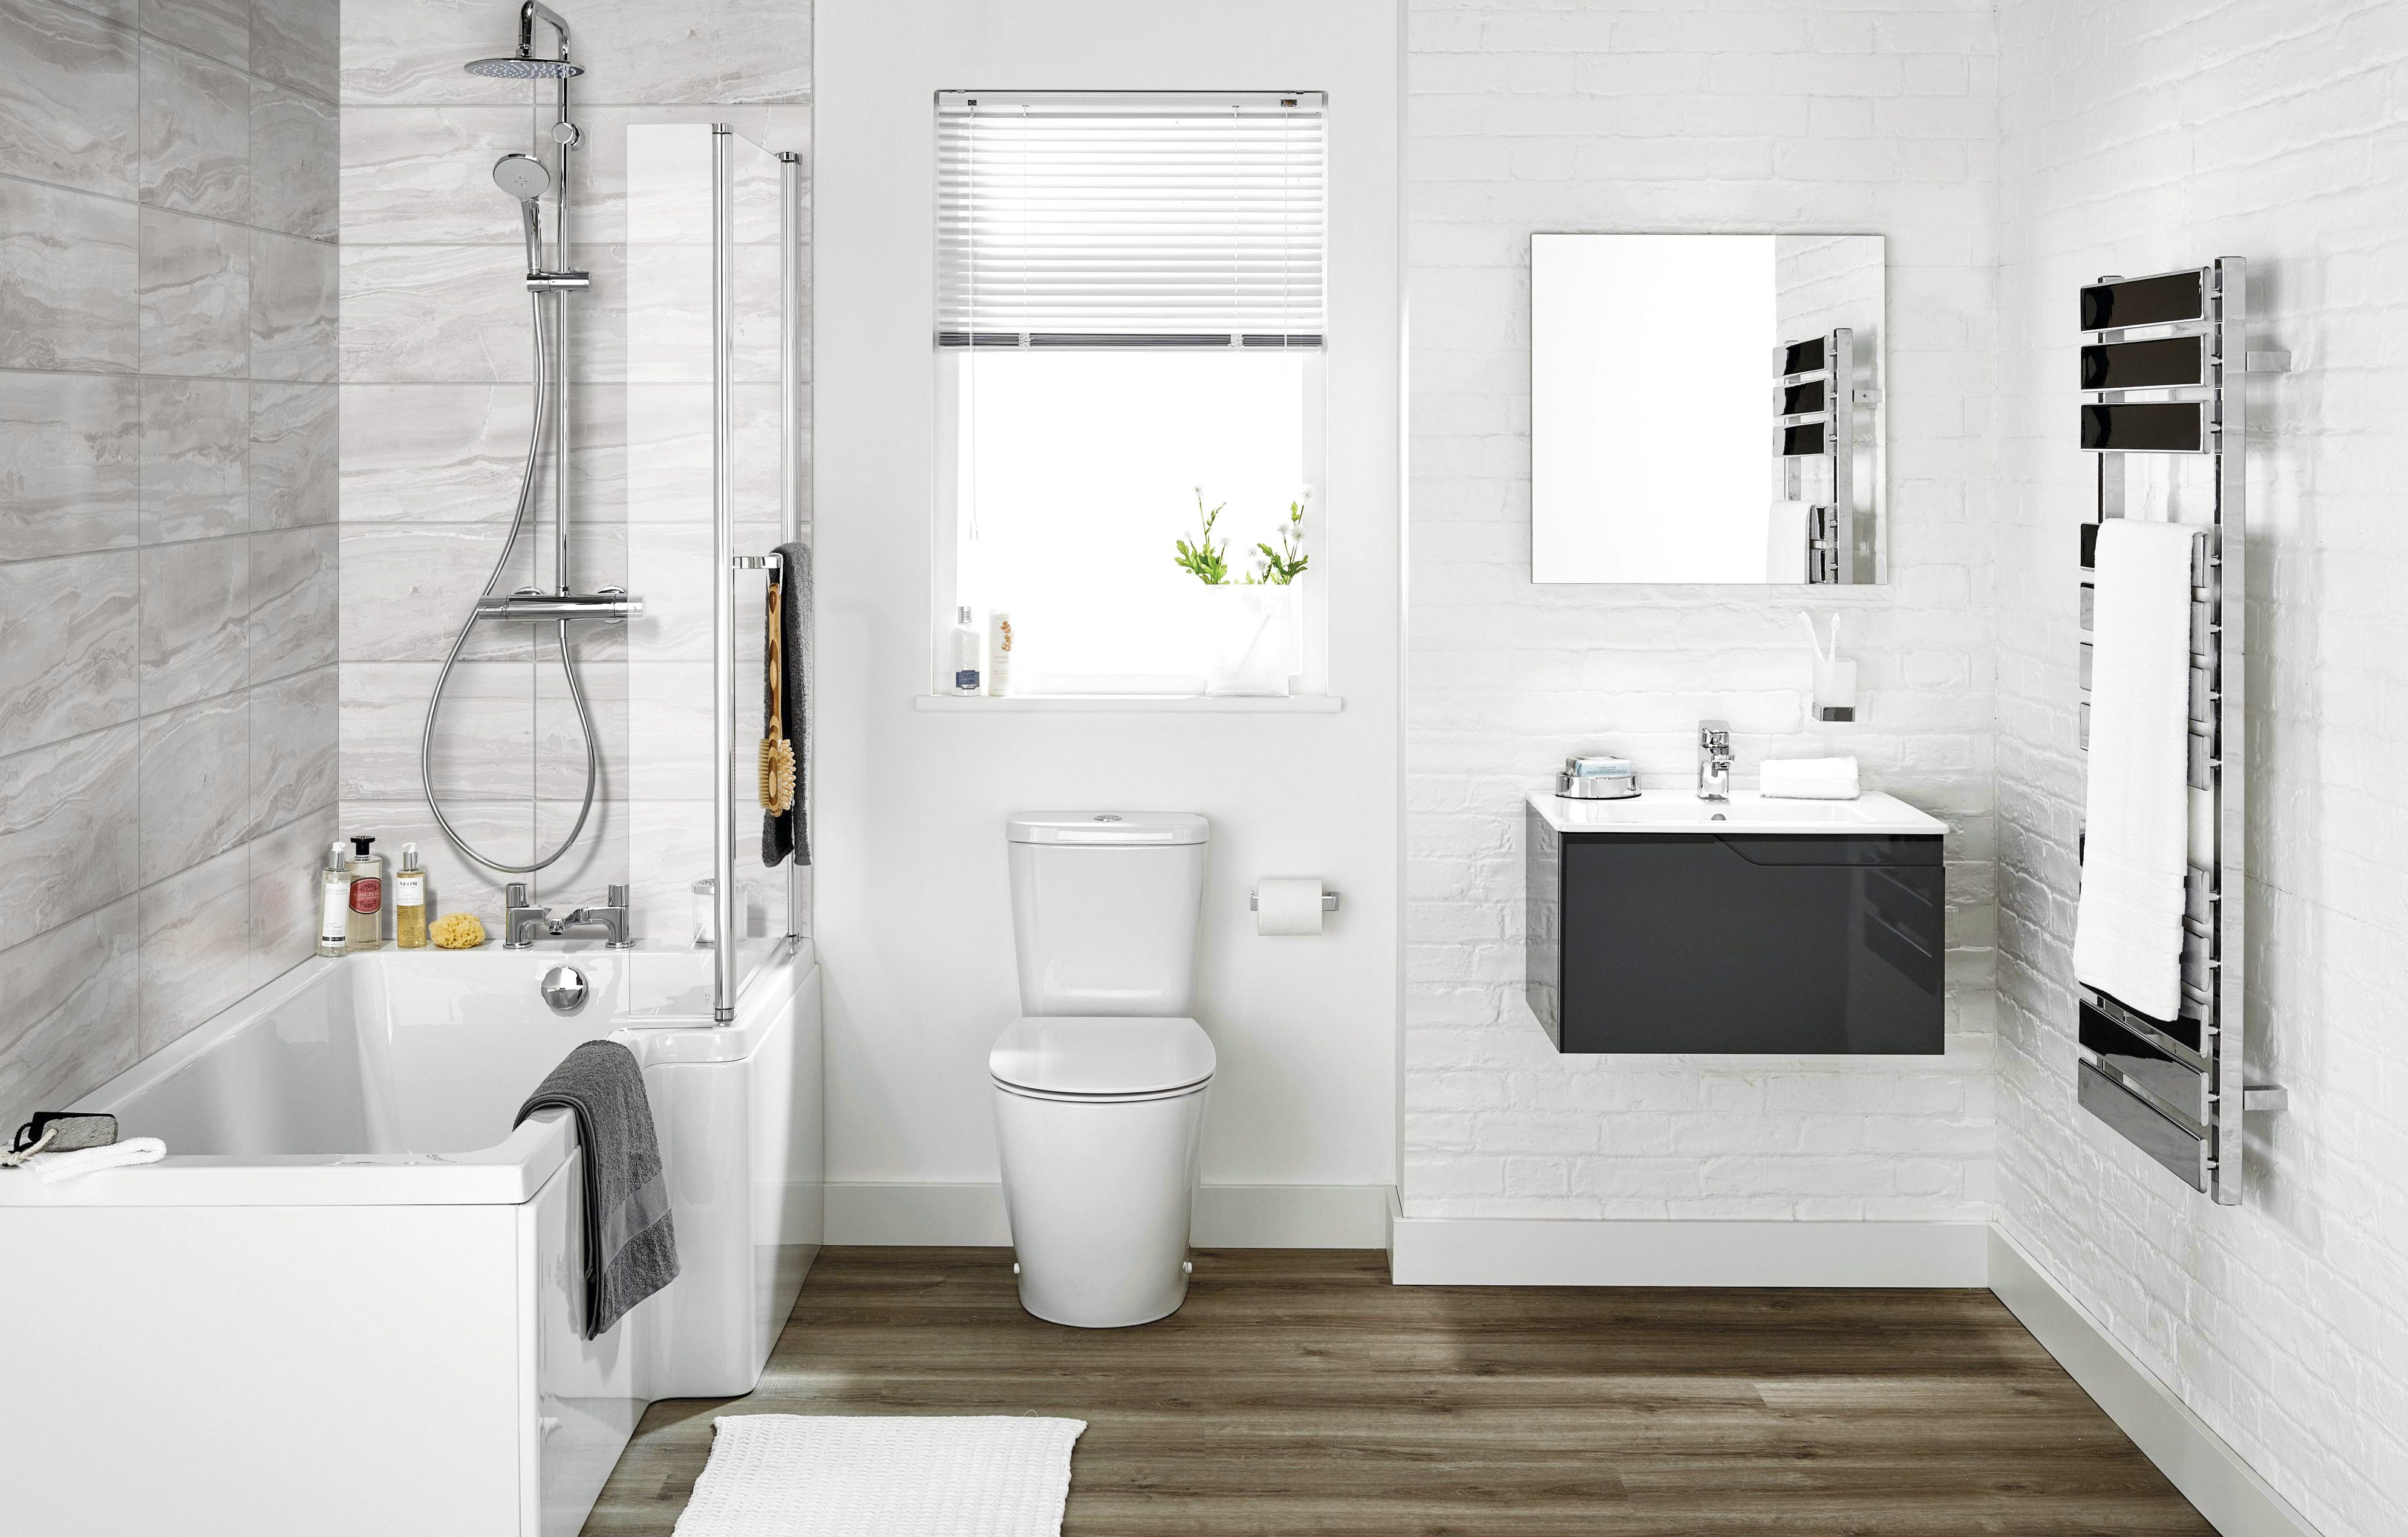 Small Bathroom Layout Ideas Make The Space Fully Functional And Less Cluttered Cool House Concepts